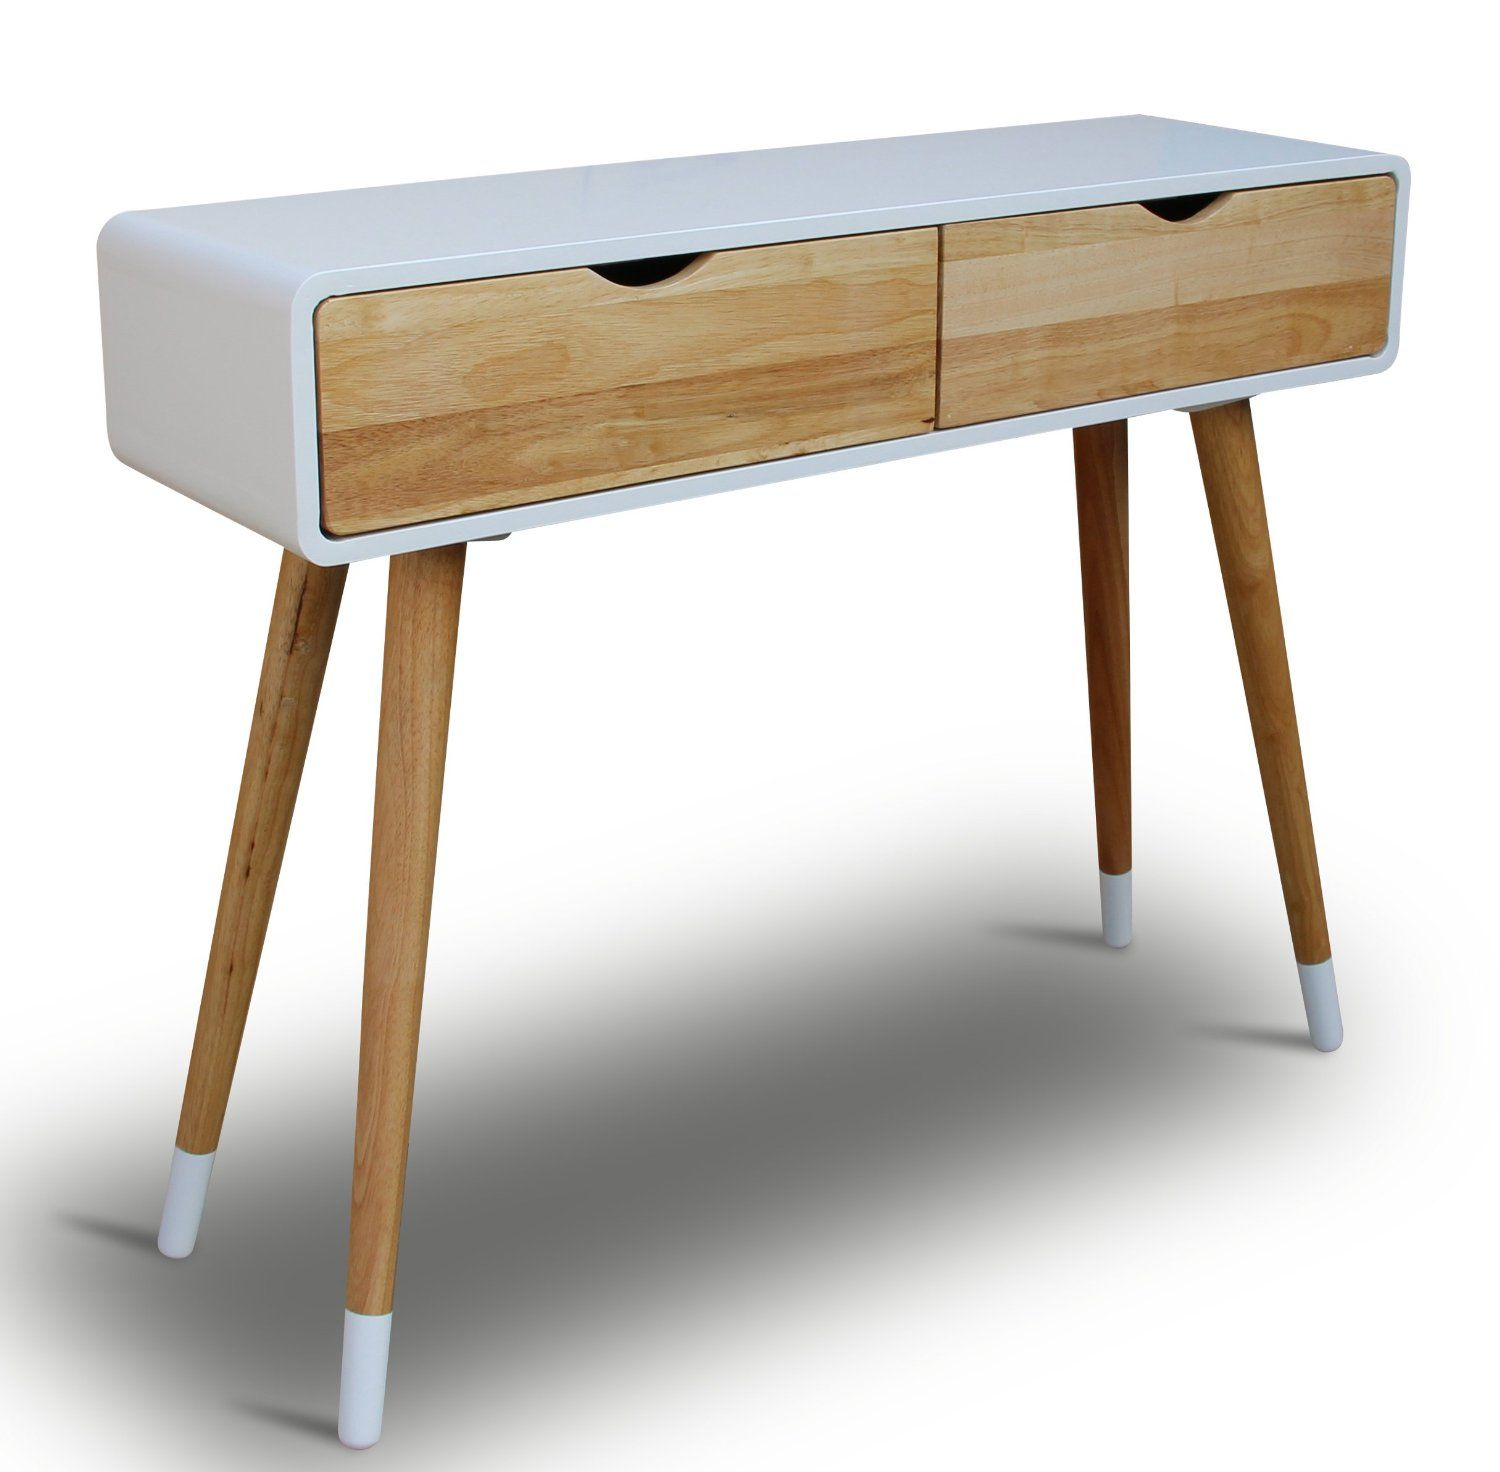 console en bois blanc 100 x 30 x 80 cm panneau d 39 appoint. Black Bedroom Furniture Sets. Home Design Ideas